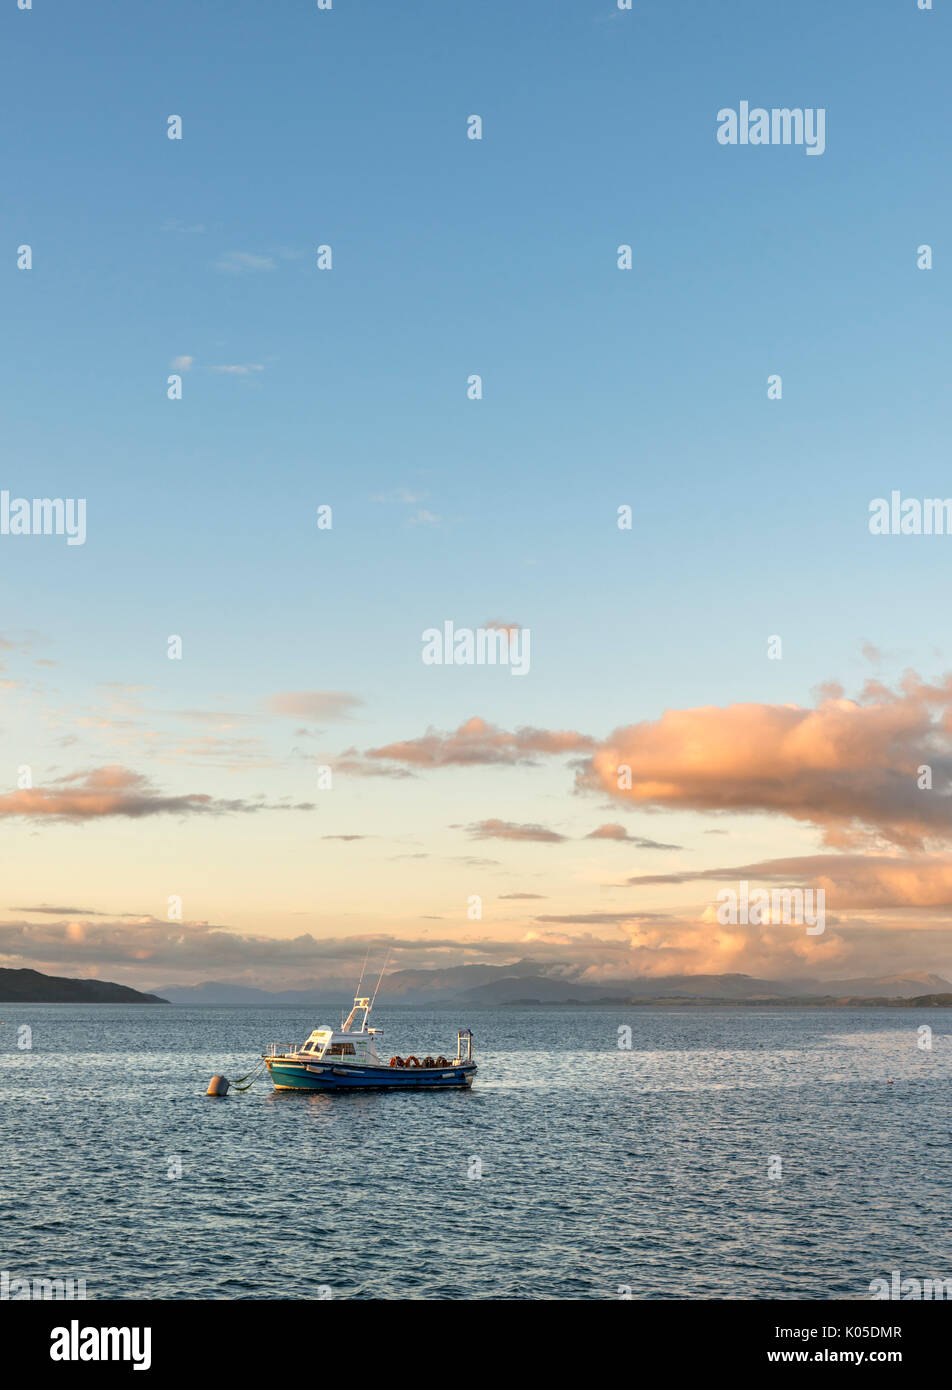 Boat moored in the bay in Craignure at sunset, Isle of Mull, Argyll and Bute, Scotland, UK - Stock Image